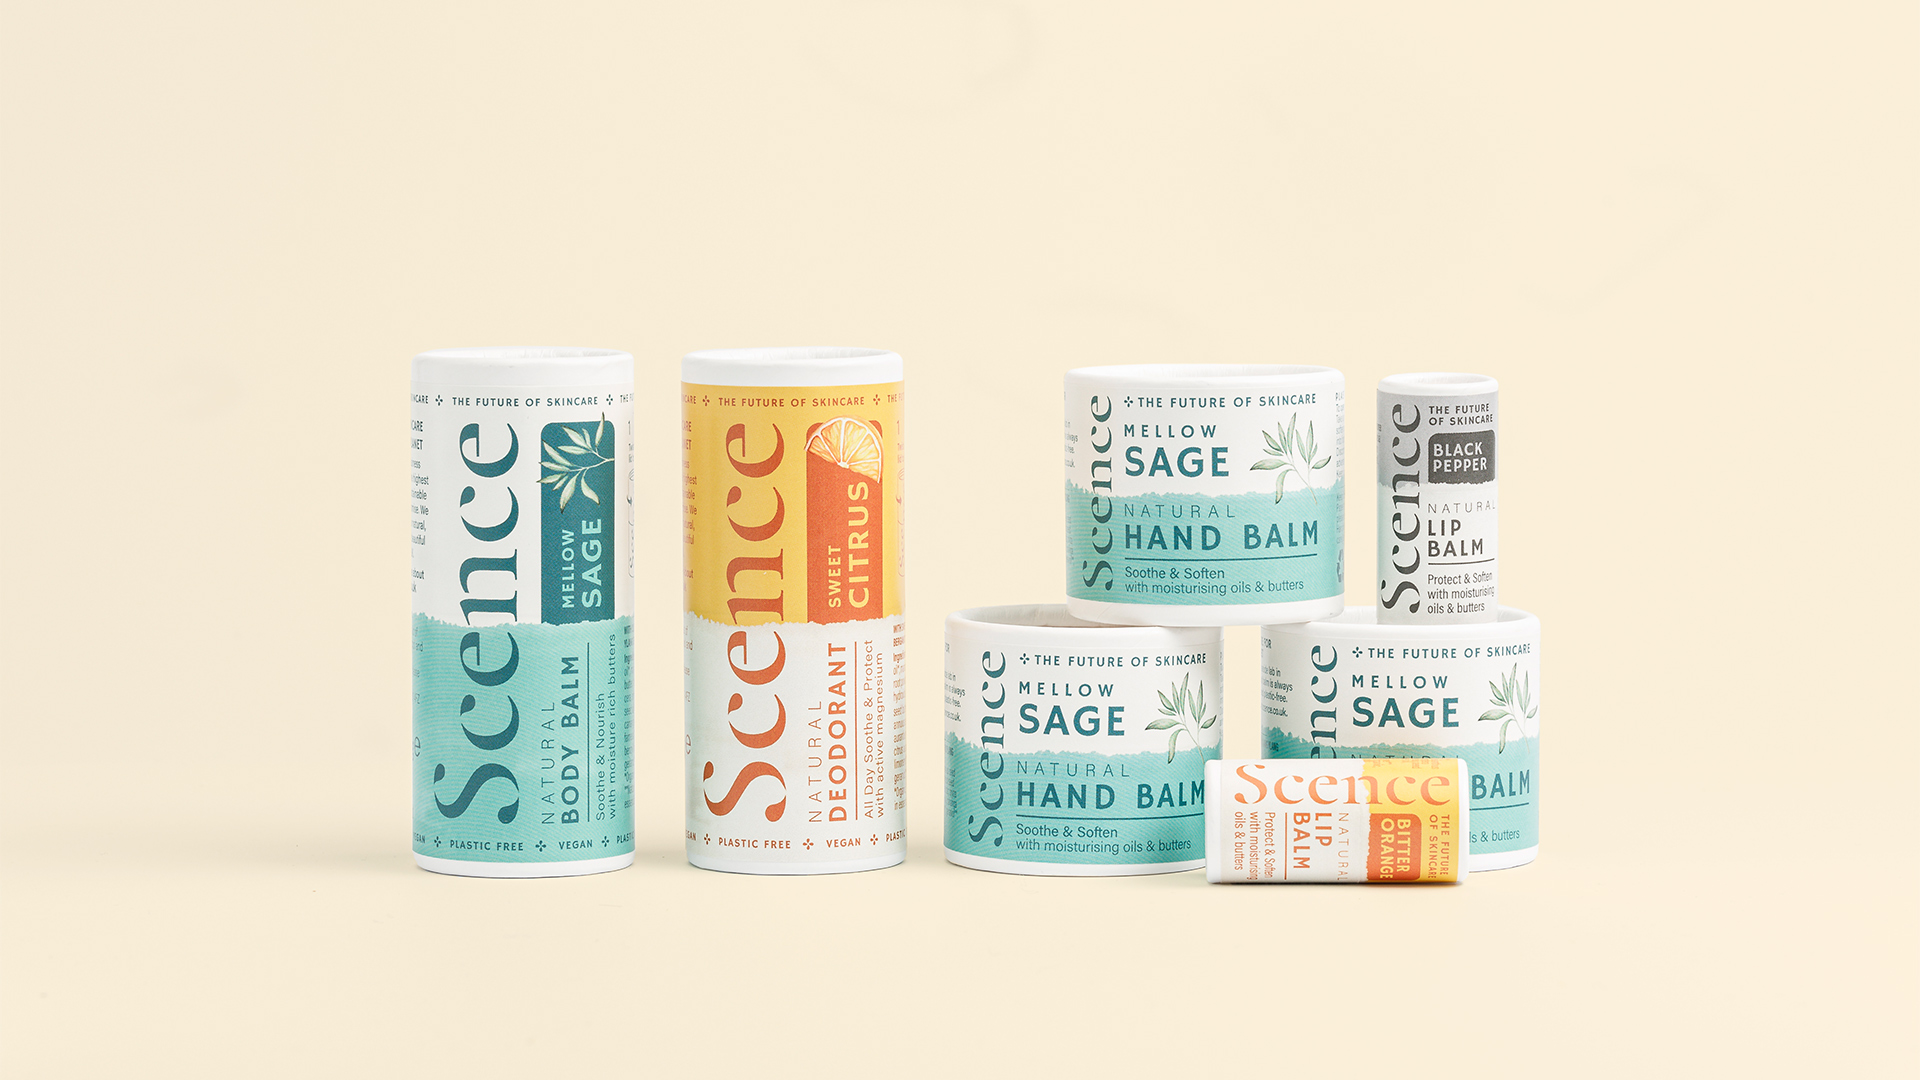 Kingdom & Sparrow Rebrand Scence Skincare With Sustainability at the Core